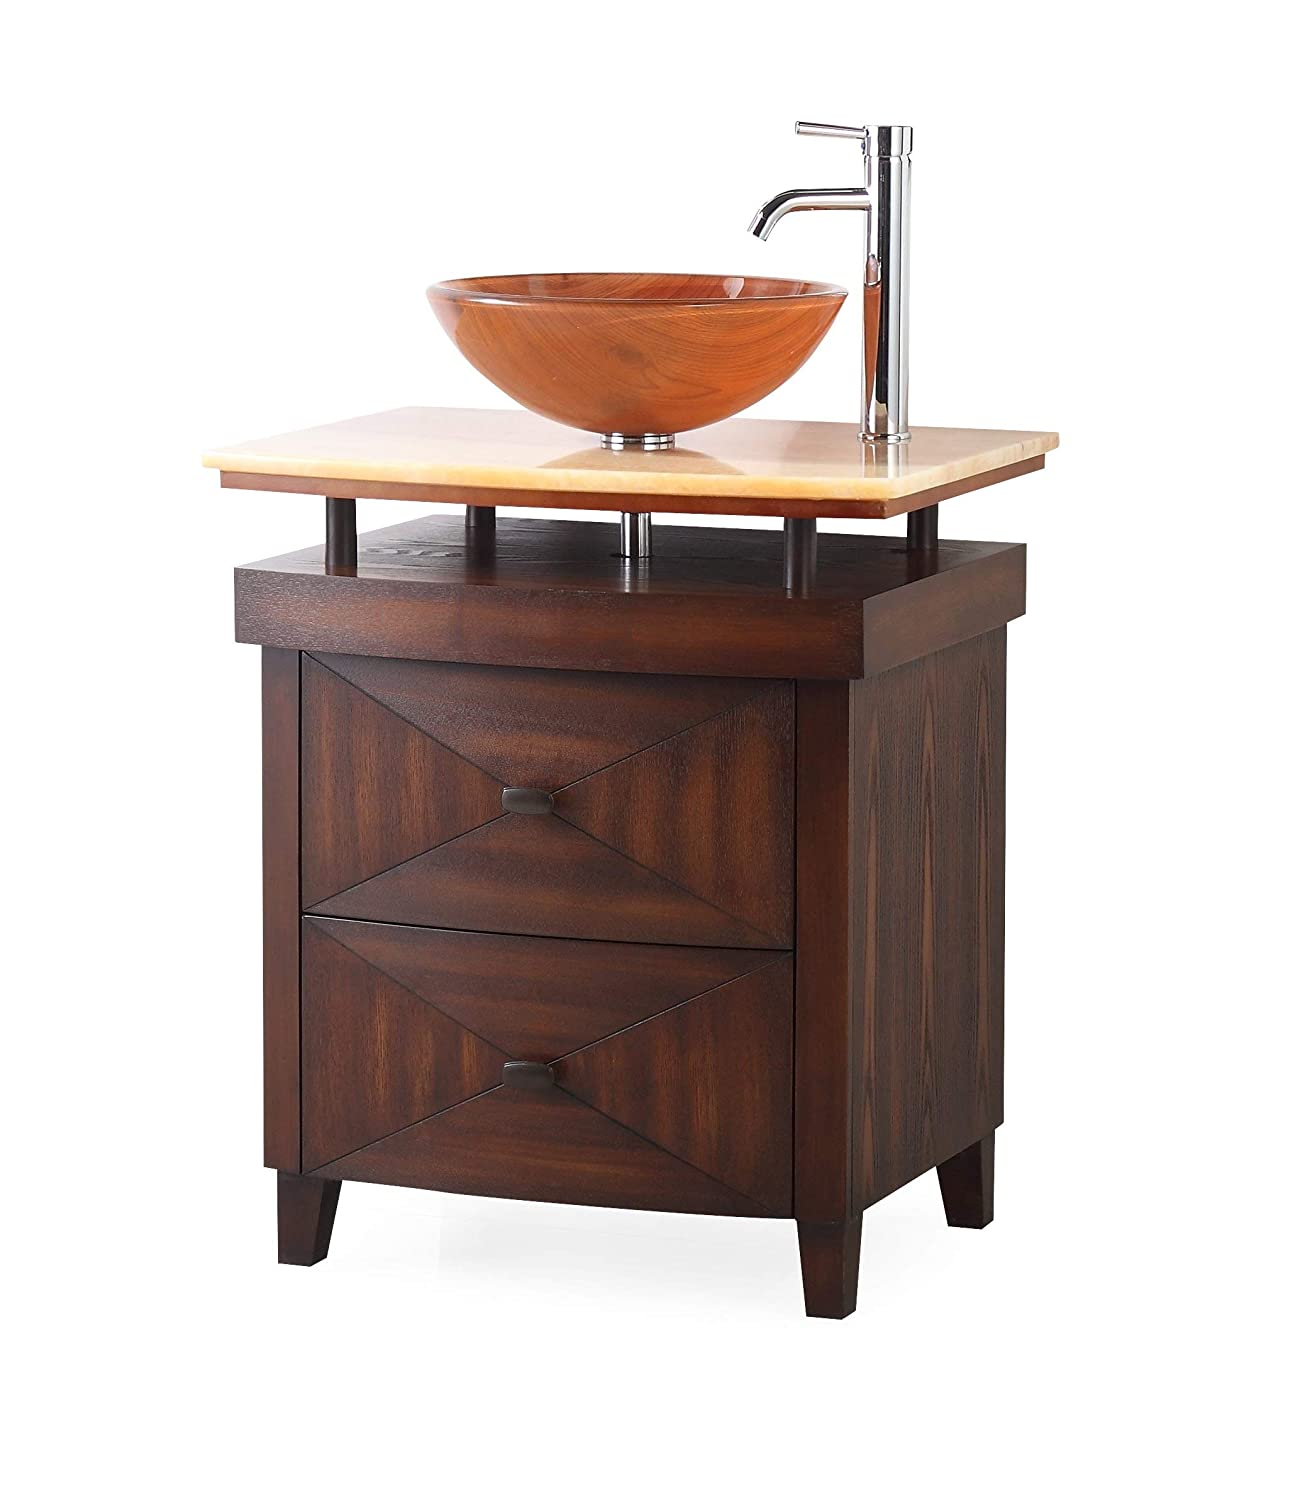 28 Onyx Counter Top Verdana Jr. Bathroom Sink Vanity – Faucet vessel all inclusive SW029